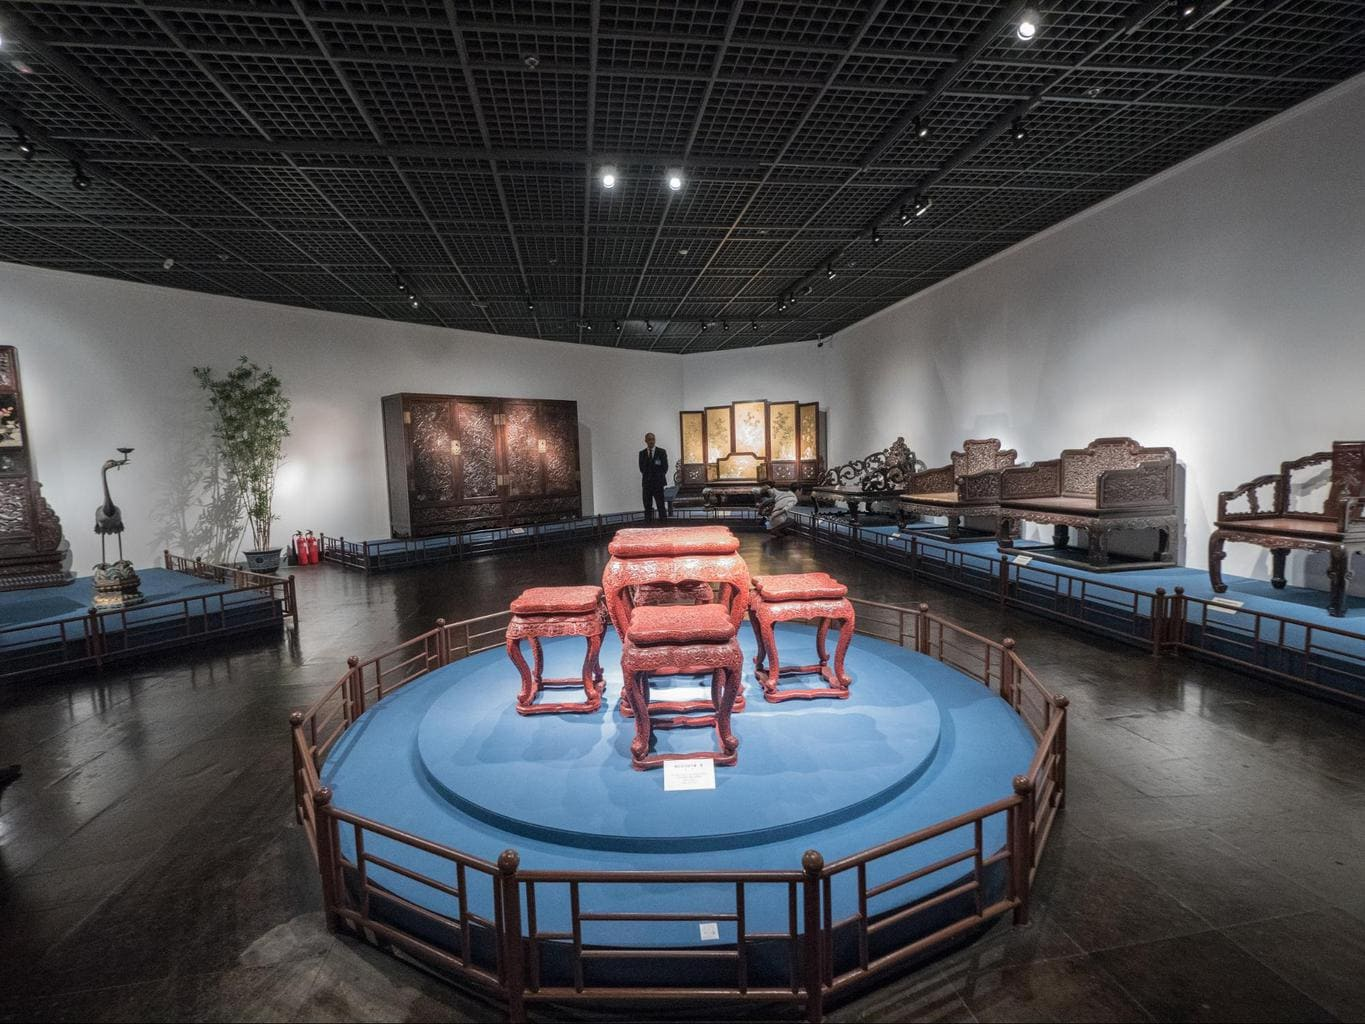 The exhibits at the Shanghai Museum